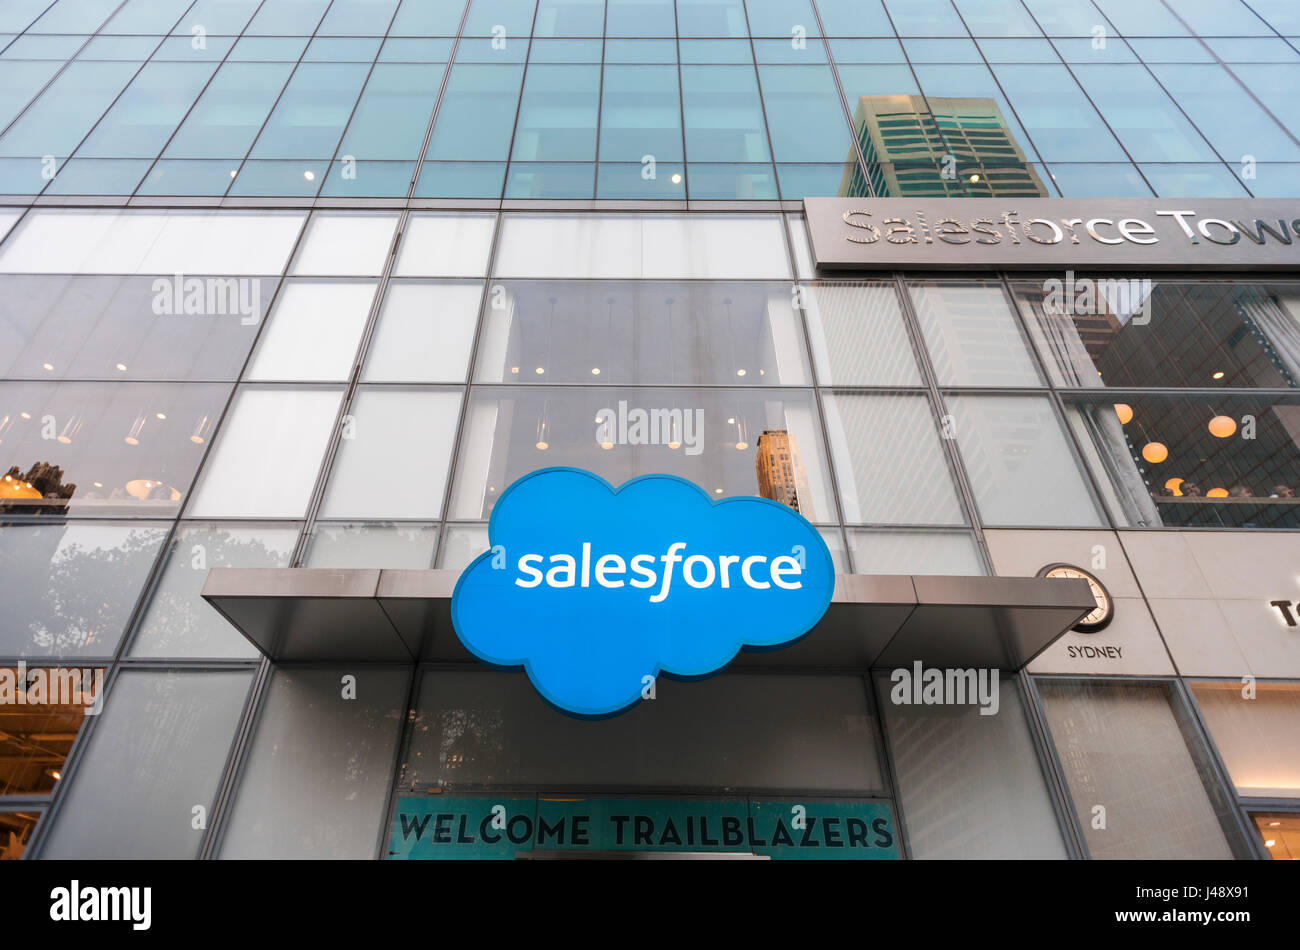 The offices of Salesforce, a cloud-computing company, are seen in Midtown Manhattan in New York on Tuesday, May - Stock Image